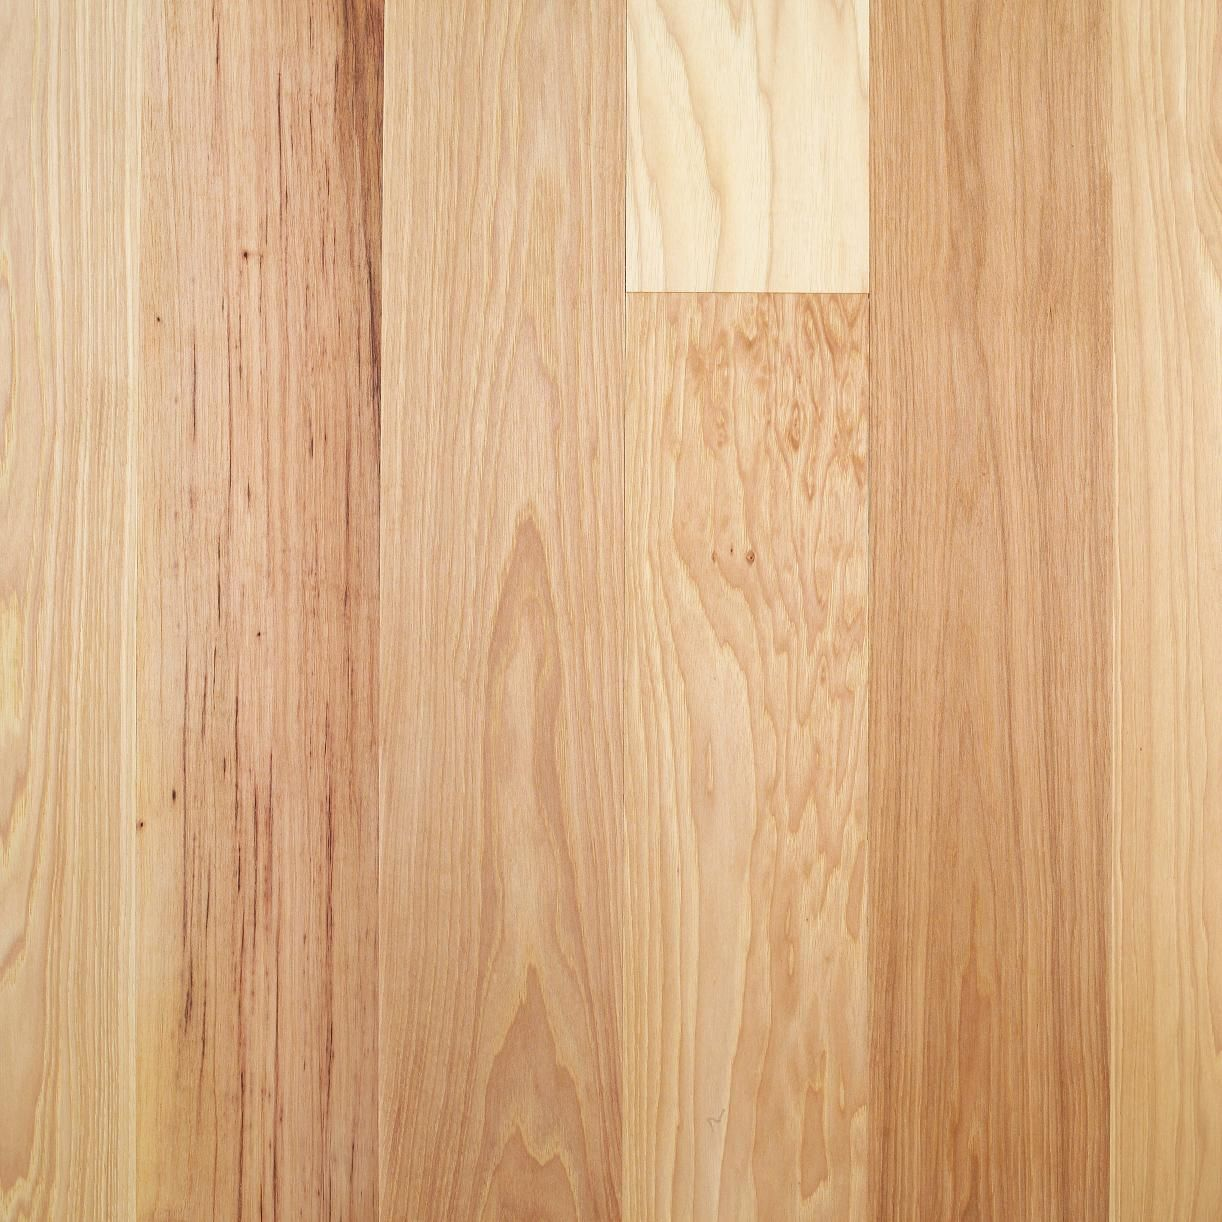 This is what 1st grade hickory flooring will look like for Unstained hardwood floors